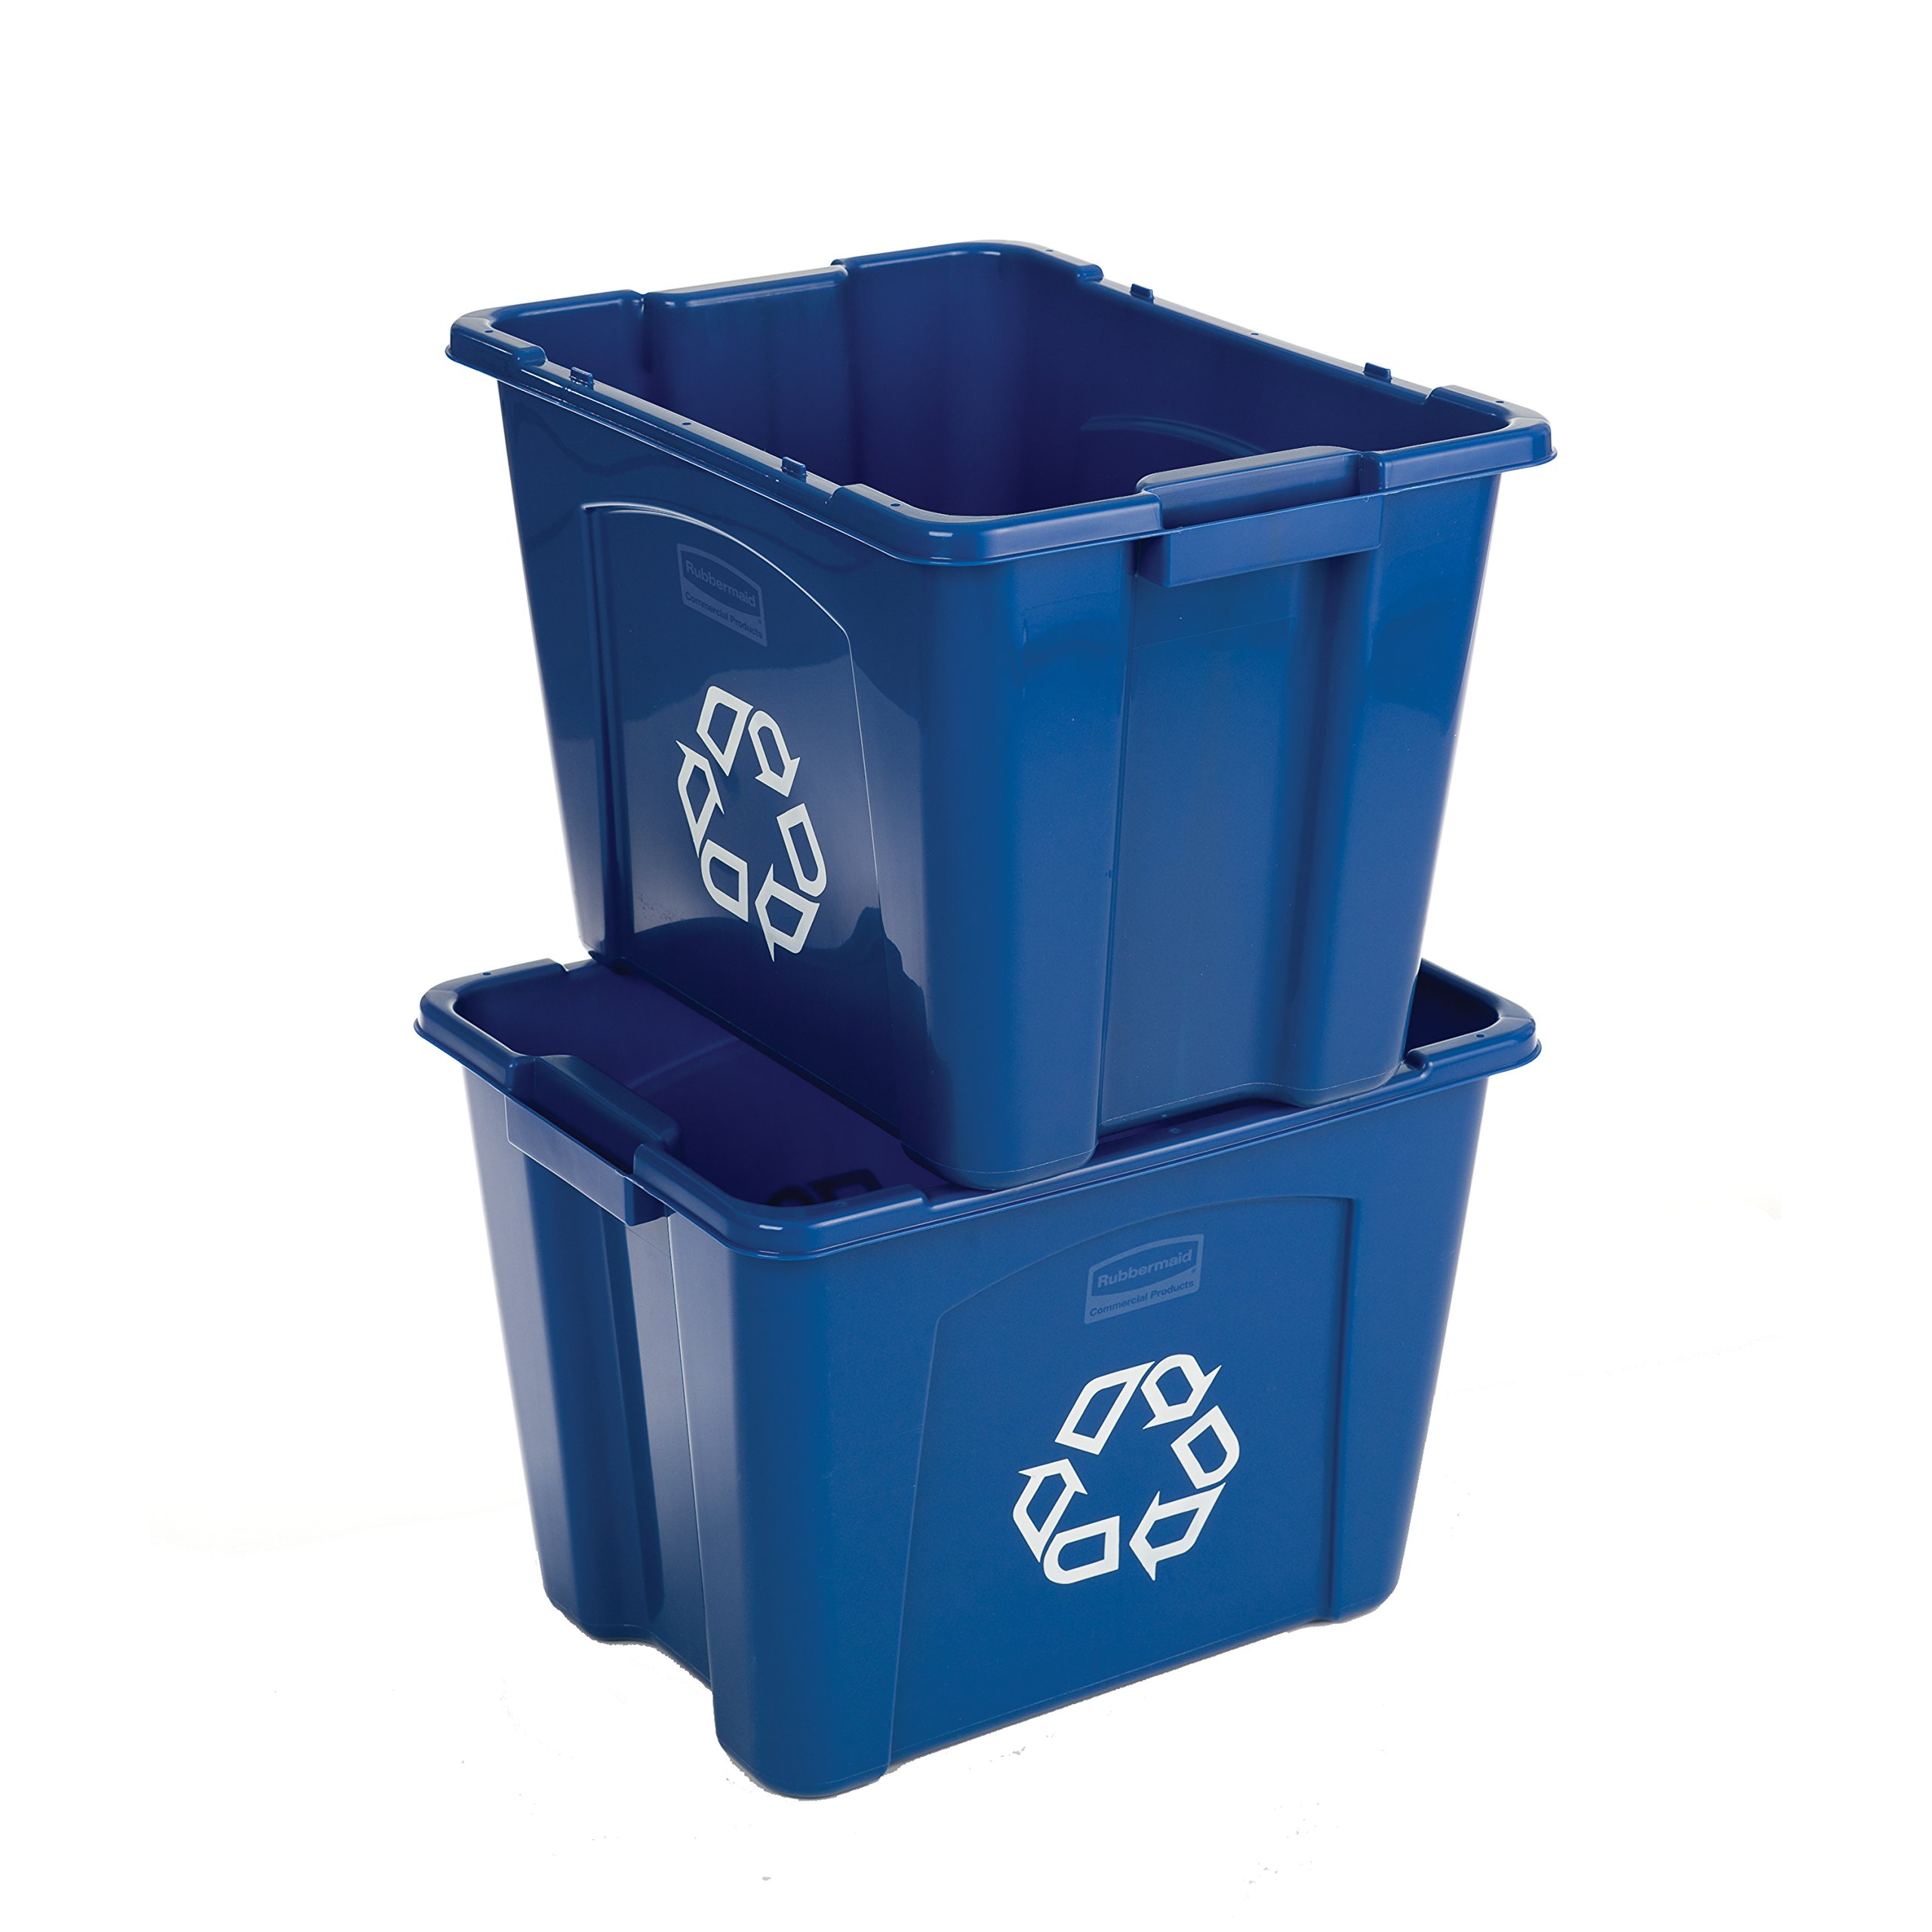 Rubbermaid Commercial Stackable Recycling Bin, 14 Gallon, Blue (FG571473BLUE)